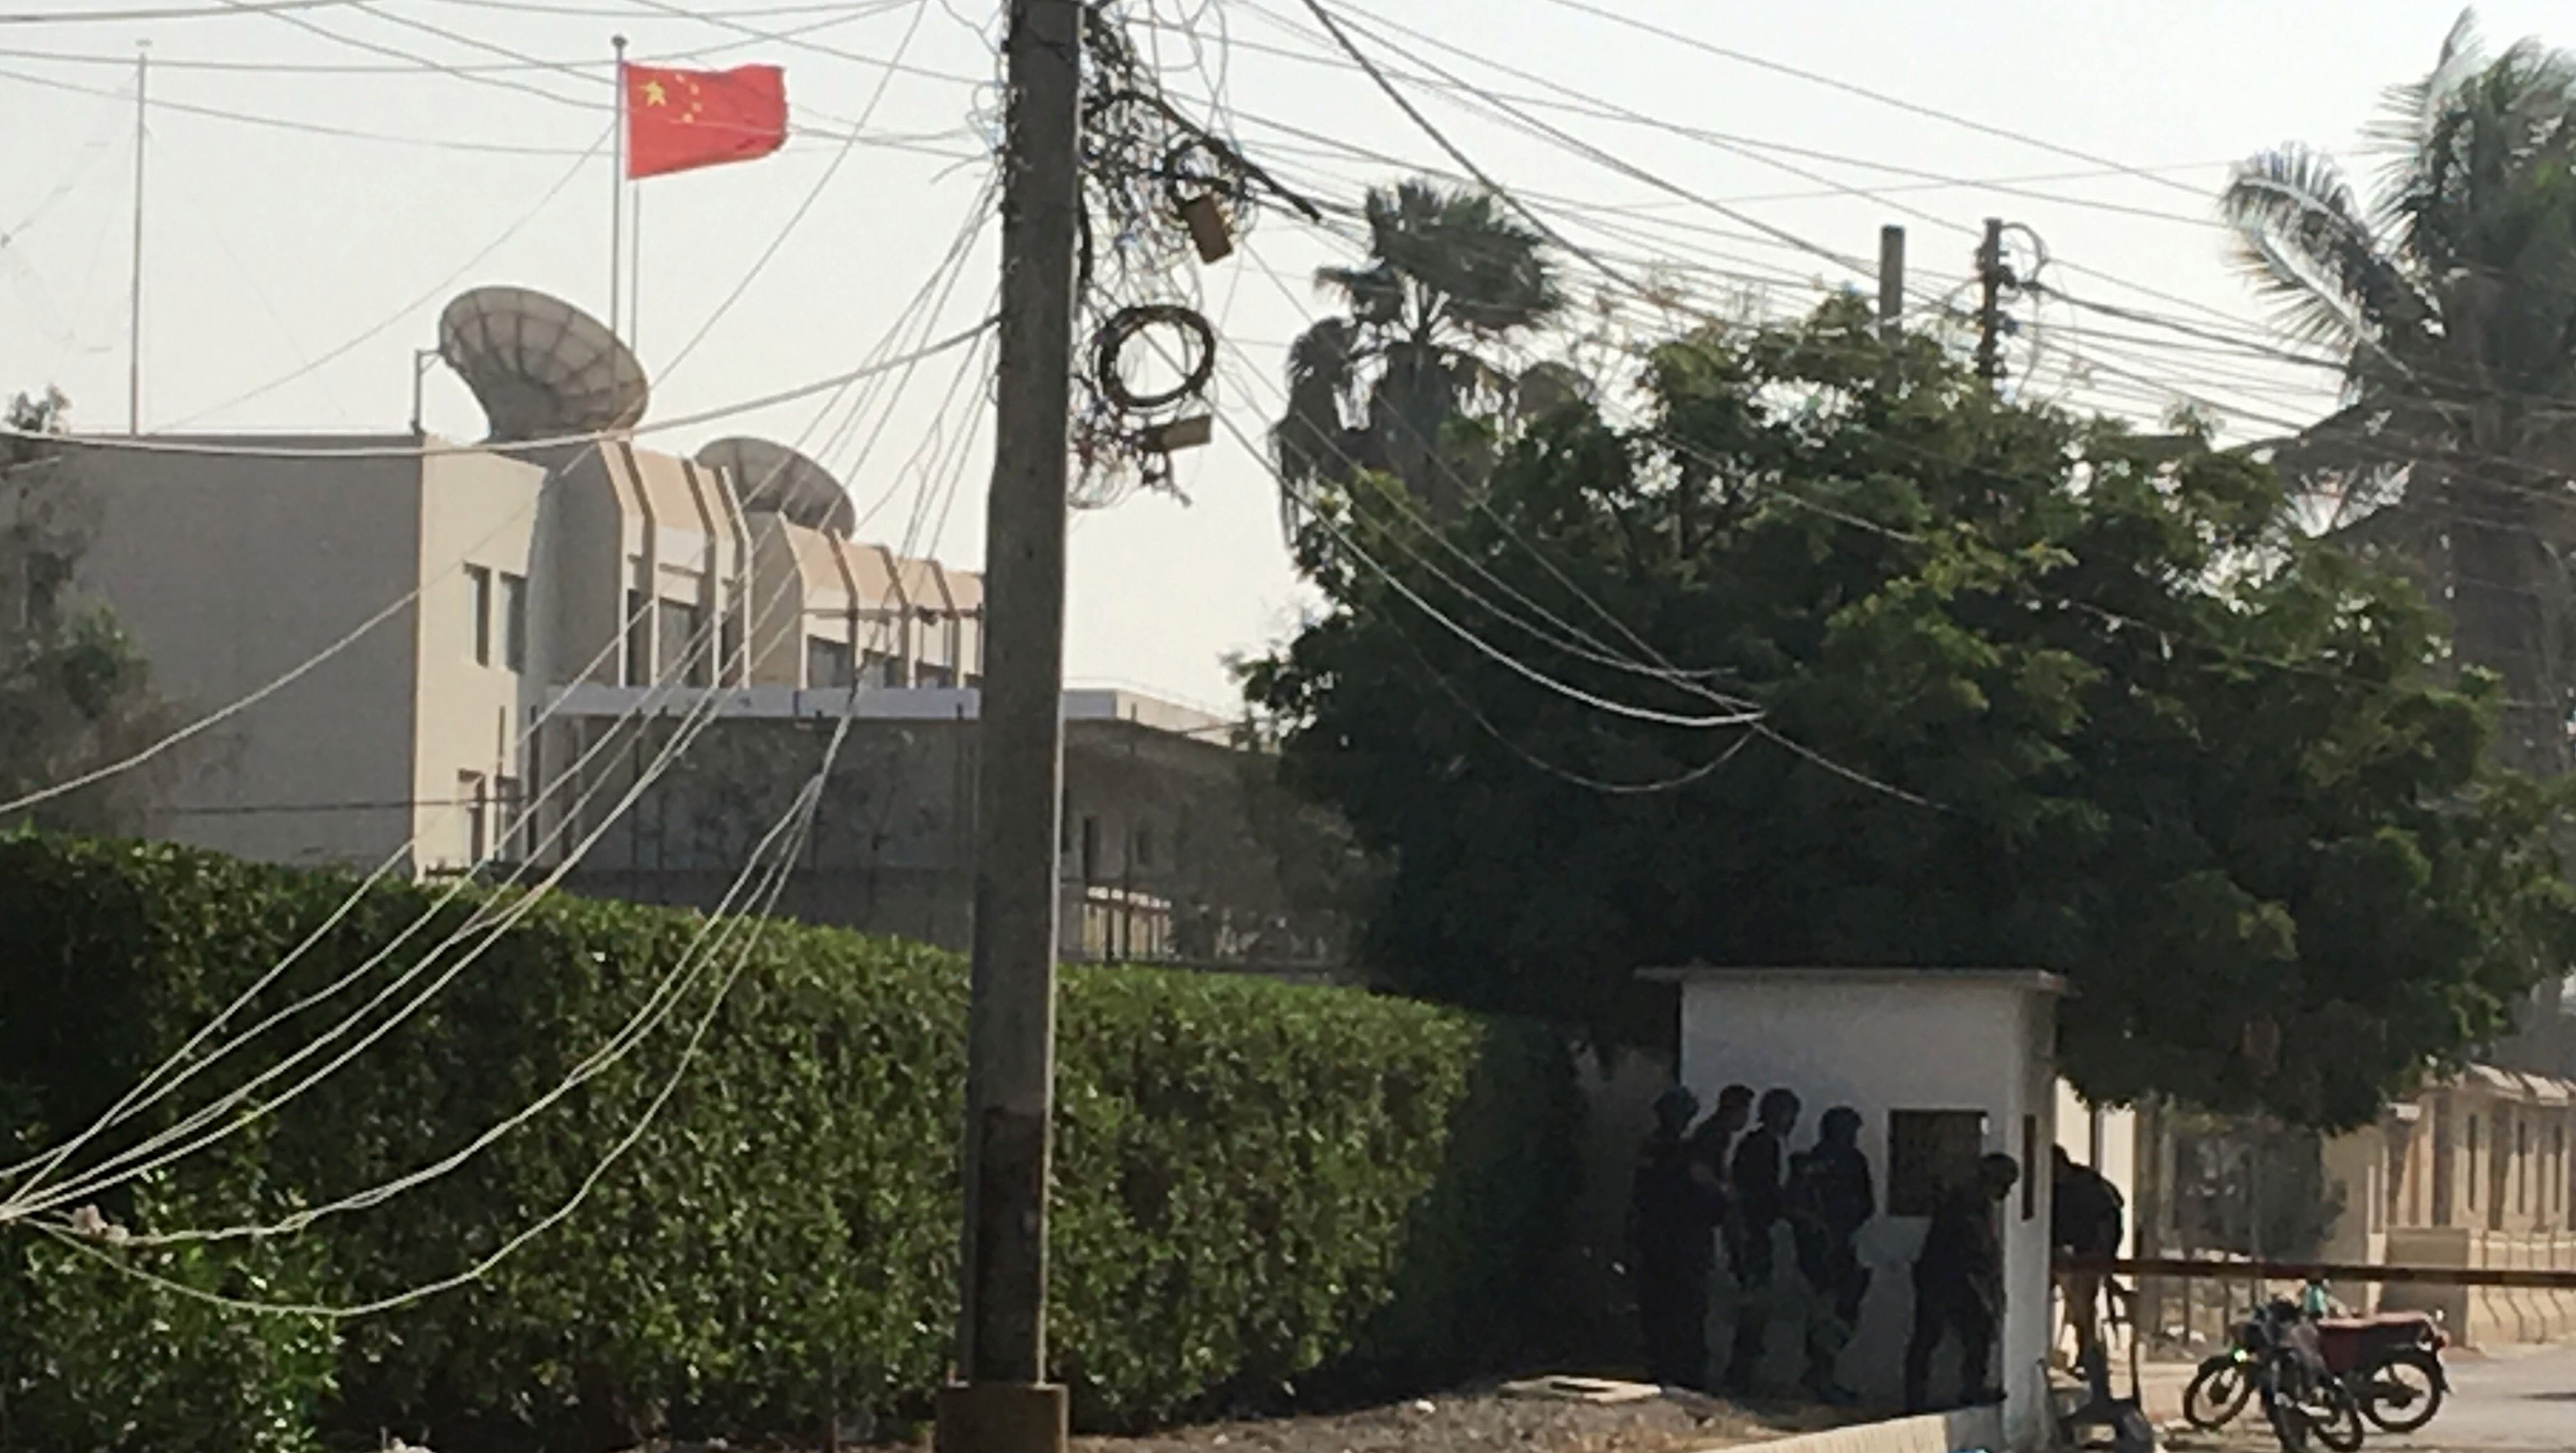 Paramilitary forces and police take cover behind a wall during an attack on the Chinese consulate in Karachi.